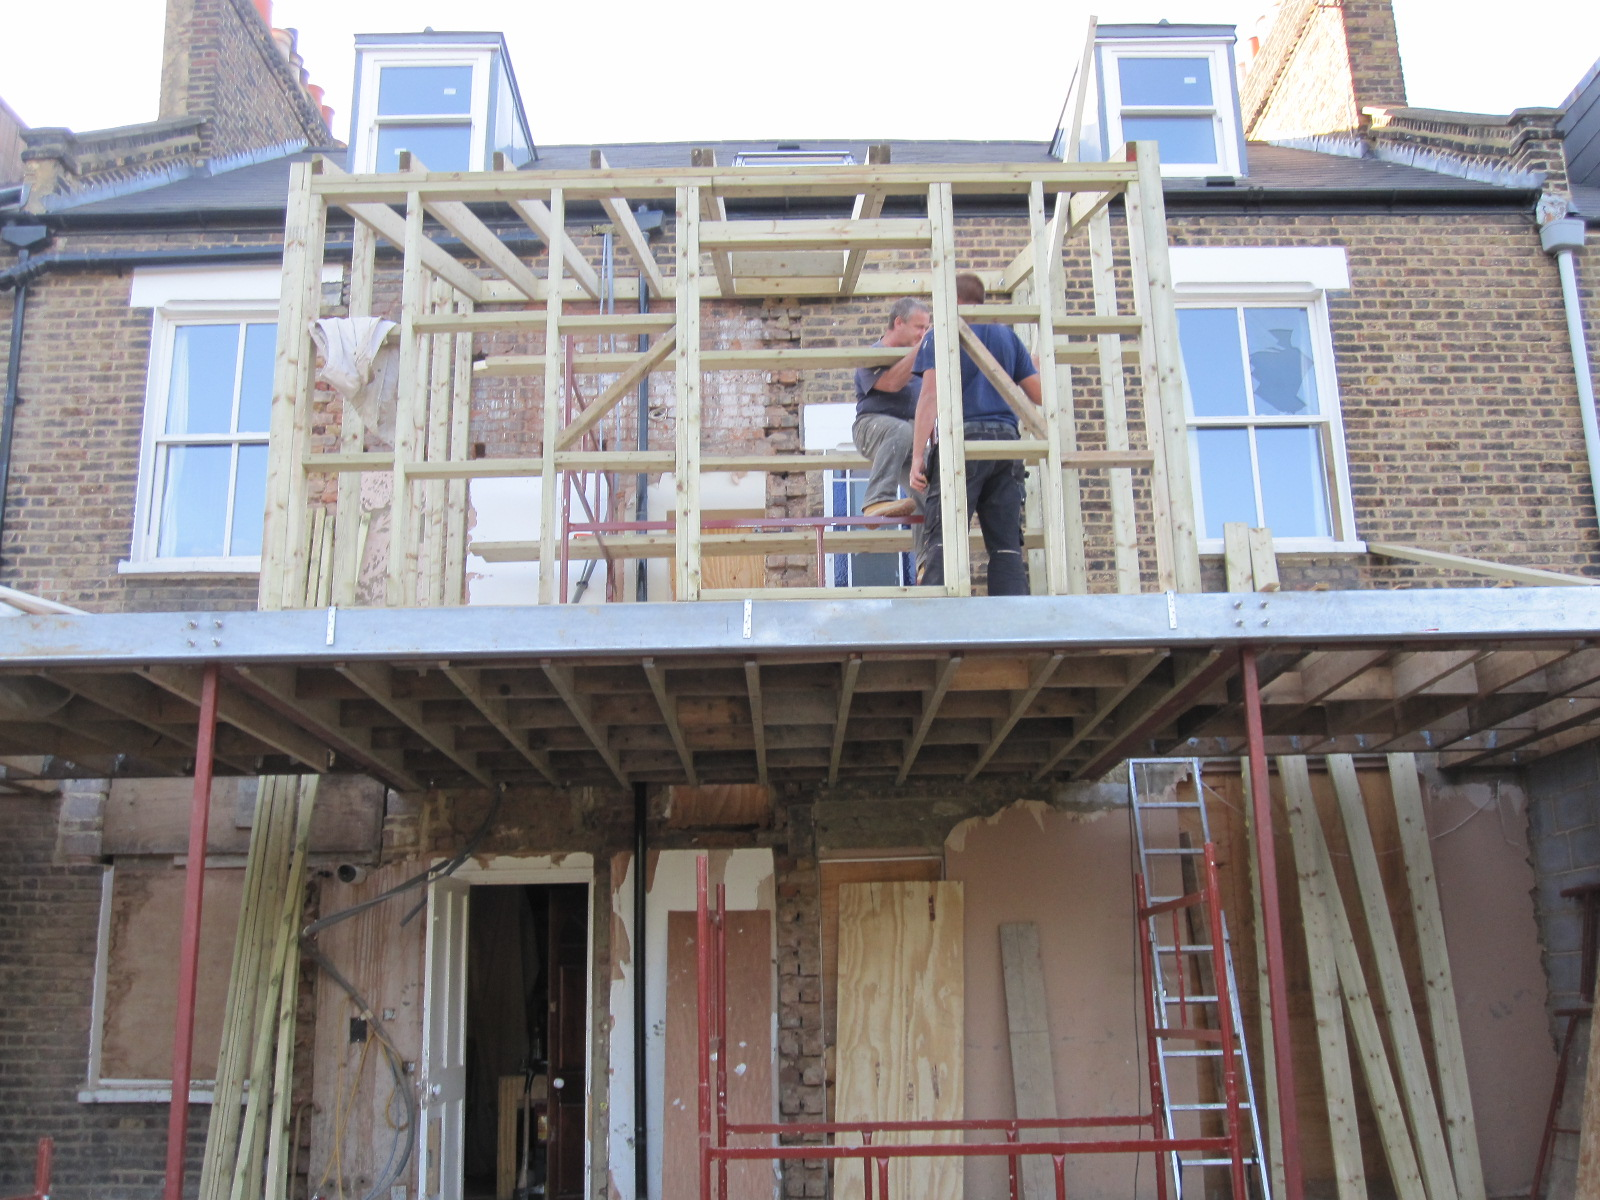 Down Below We Have The First Floor Extension Going Up, Timber Frame,  Covered With Insulation And Then Bricks On The Outside.